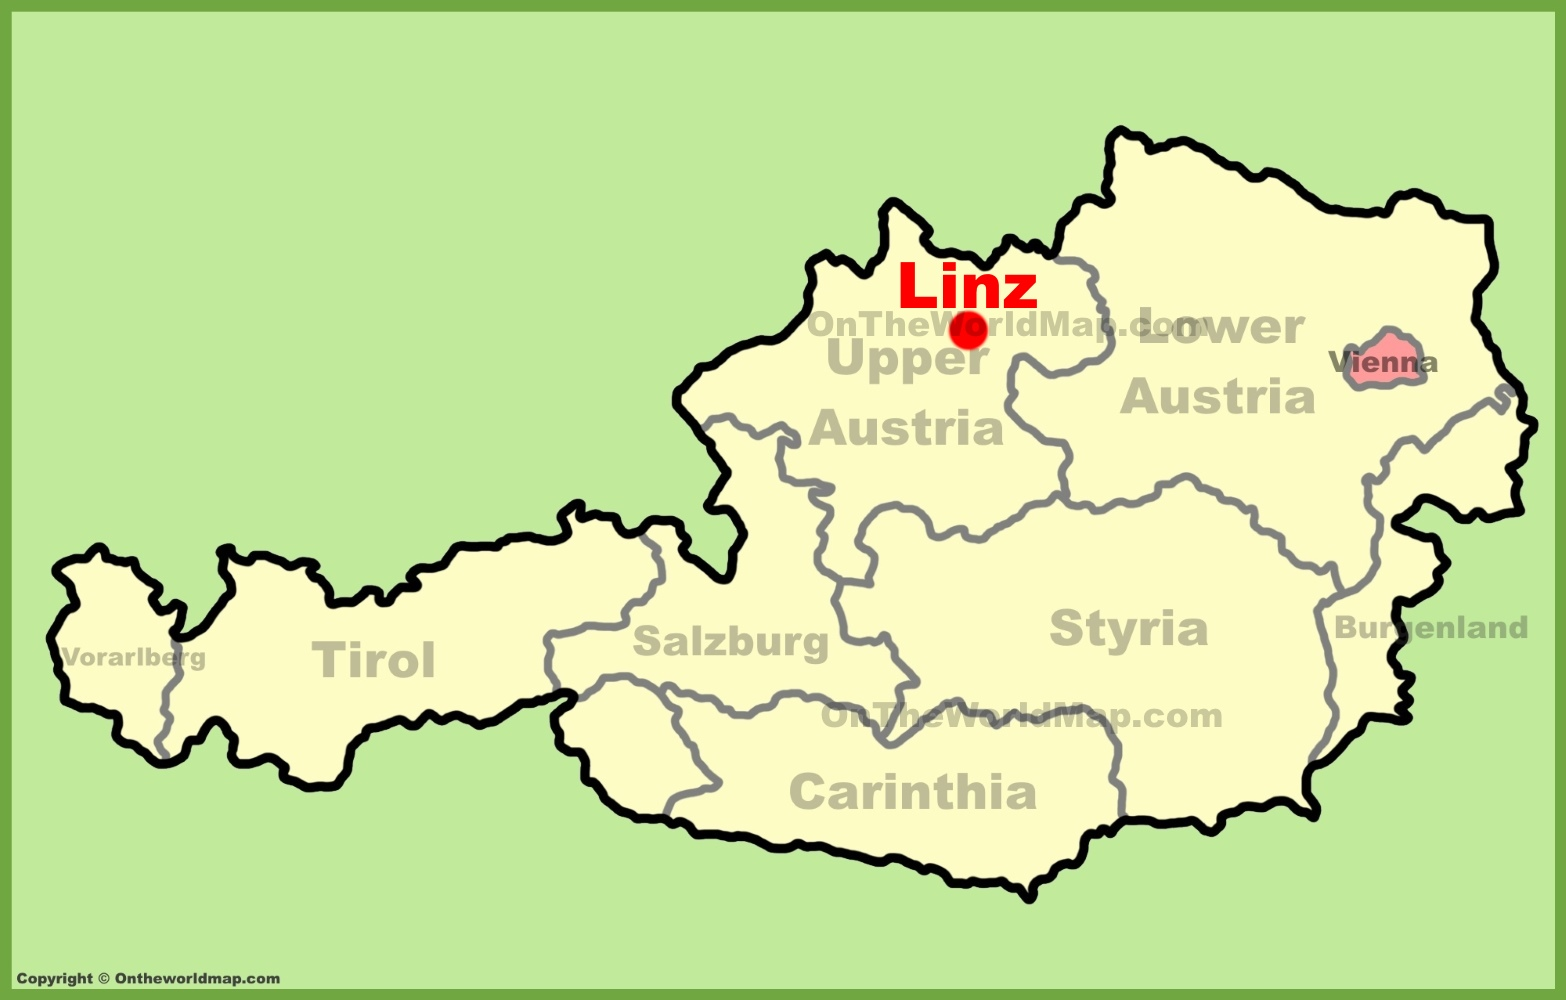 Linz location on the Austria Map